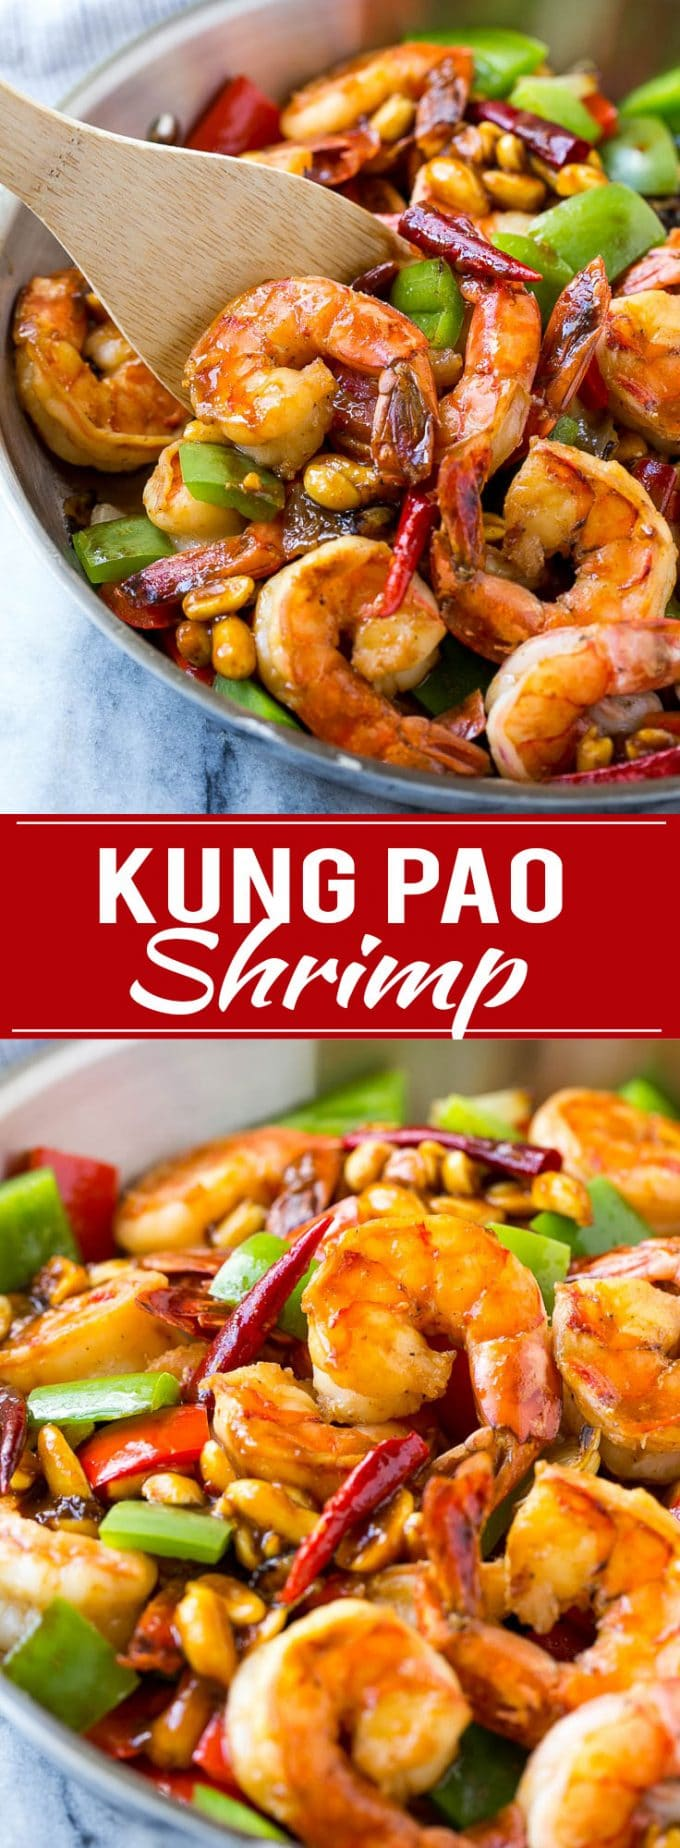 Kung Pao Shrimp | Shrimp Recipe | Shrimp Stir Fry | Easy Shrimp Recipe